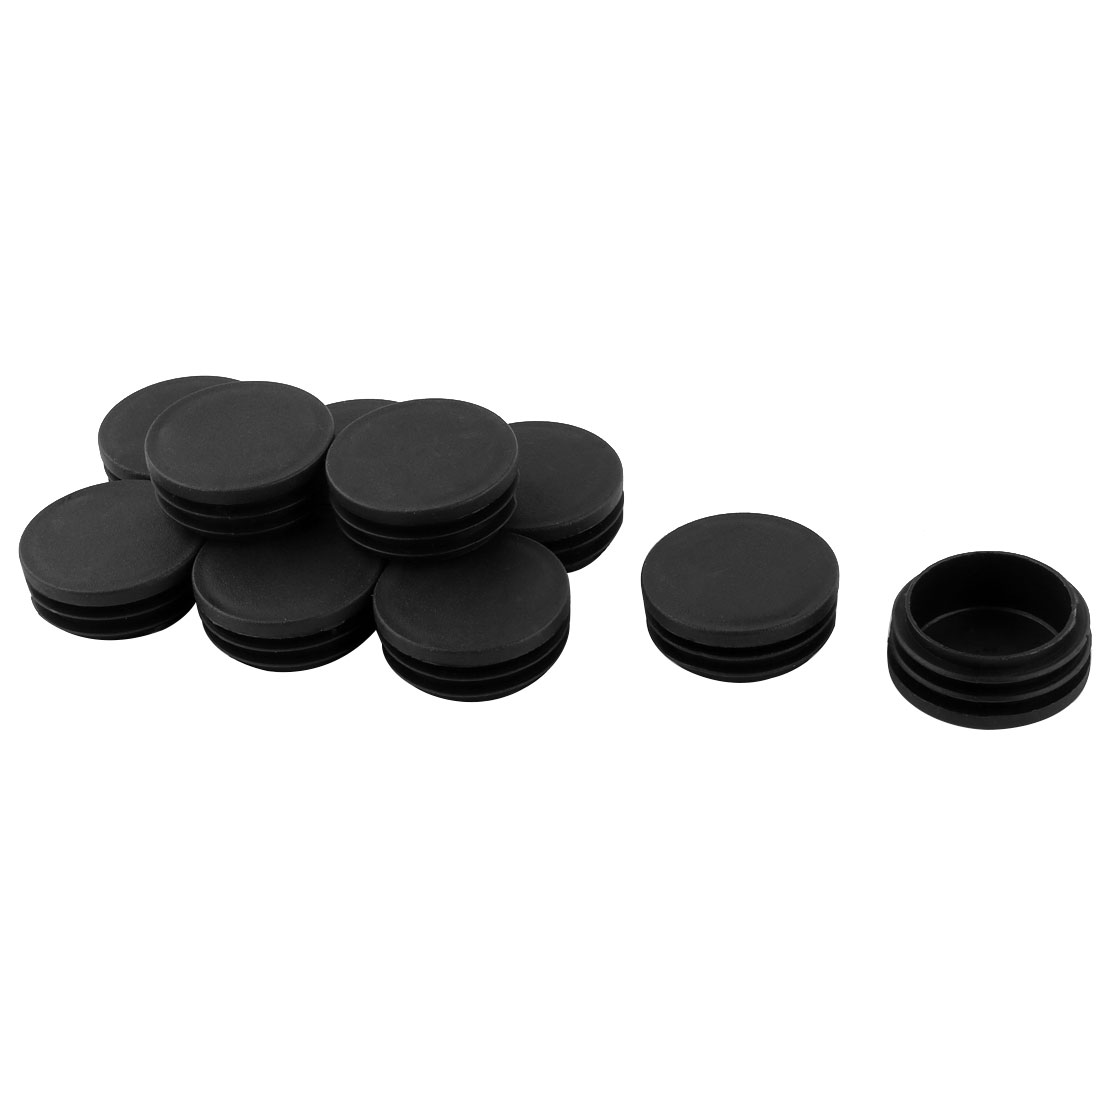 10 Pcs Black Plastic 43mm Dia Round Tubing Tube Insert Caps Covers